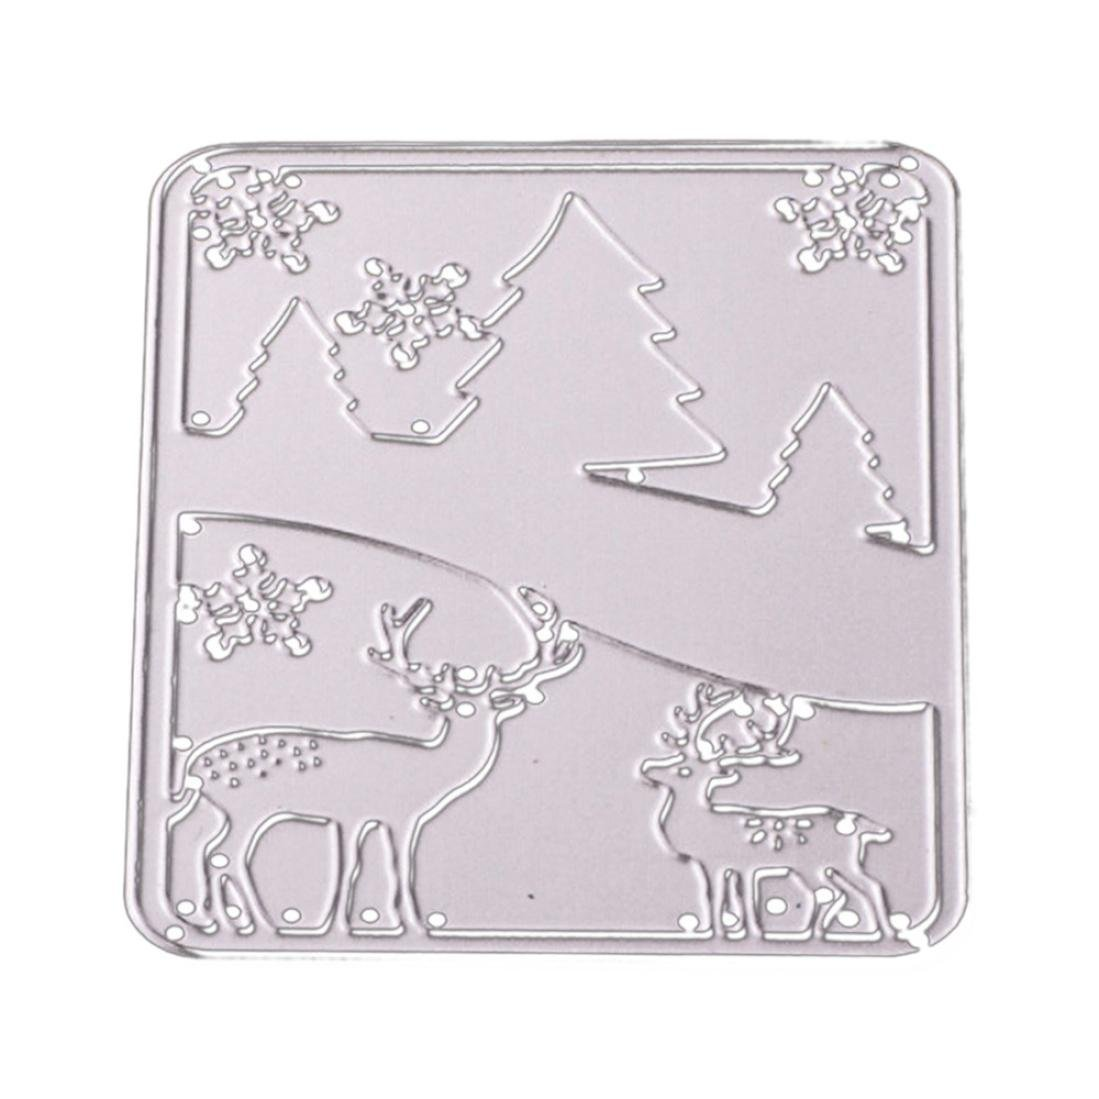 Clearance!VESNIBA Metal Dies Cut Cutting Die for Cards Making Butterfly Metal Embossing Stencils for DIY Craft